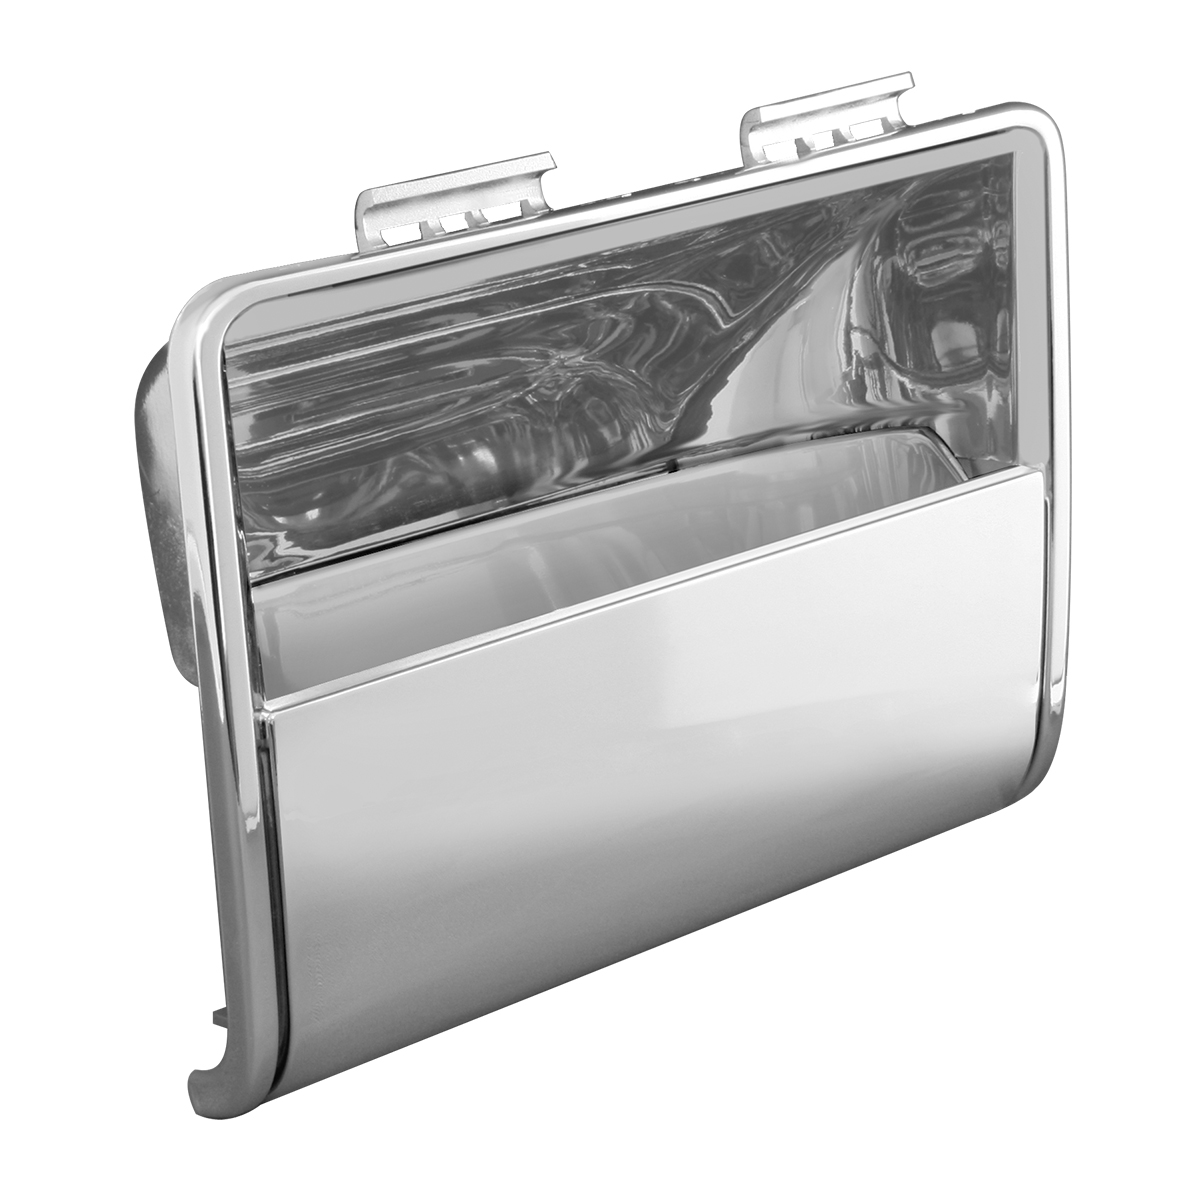 67811 Passenger Side Overhead Storage Pocket for Freightliner